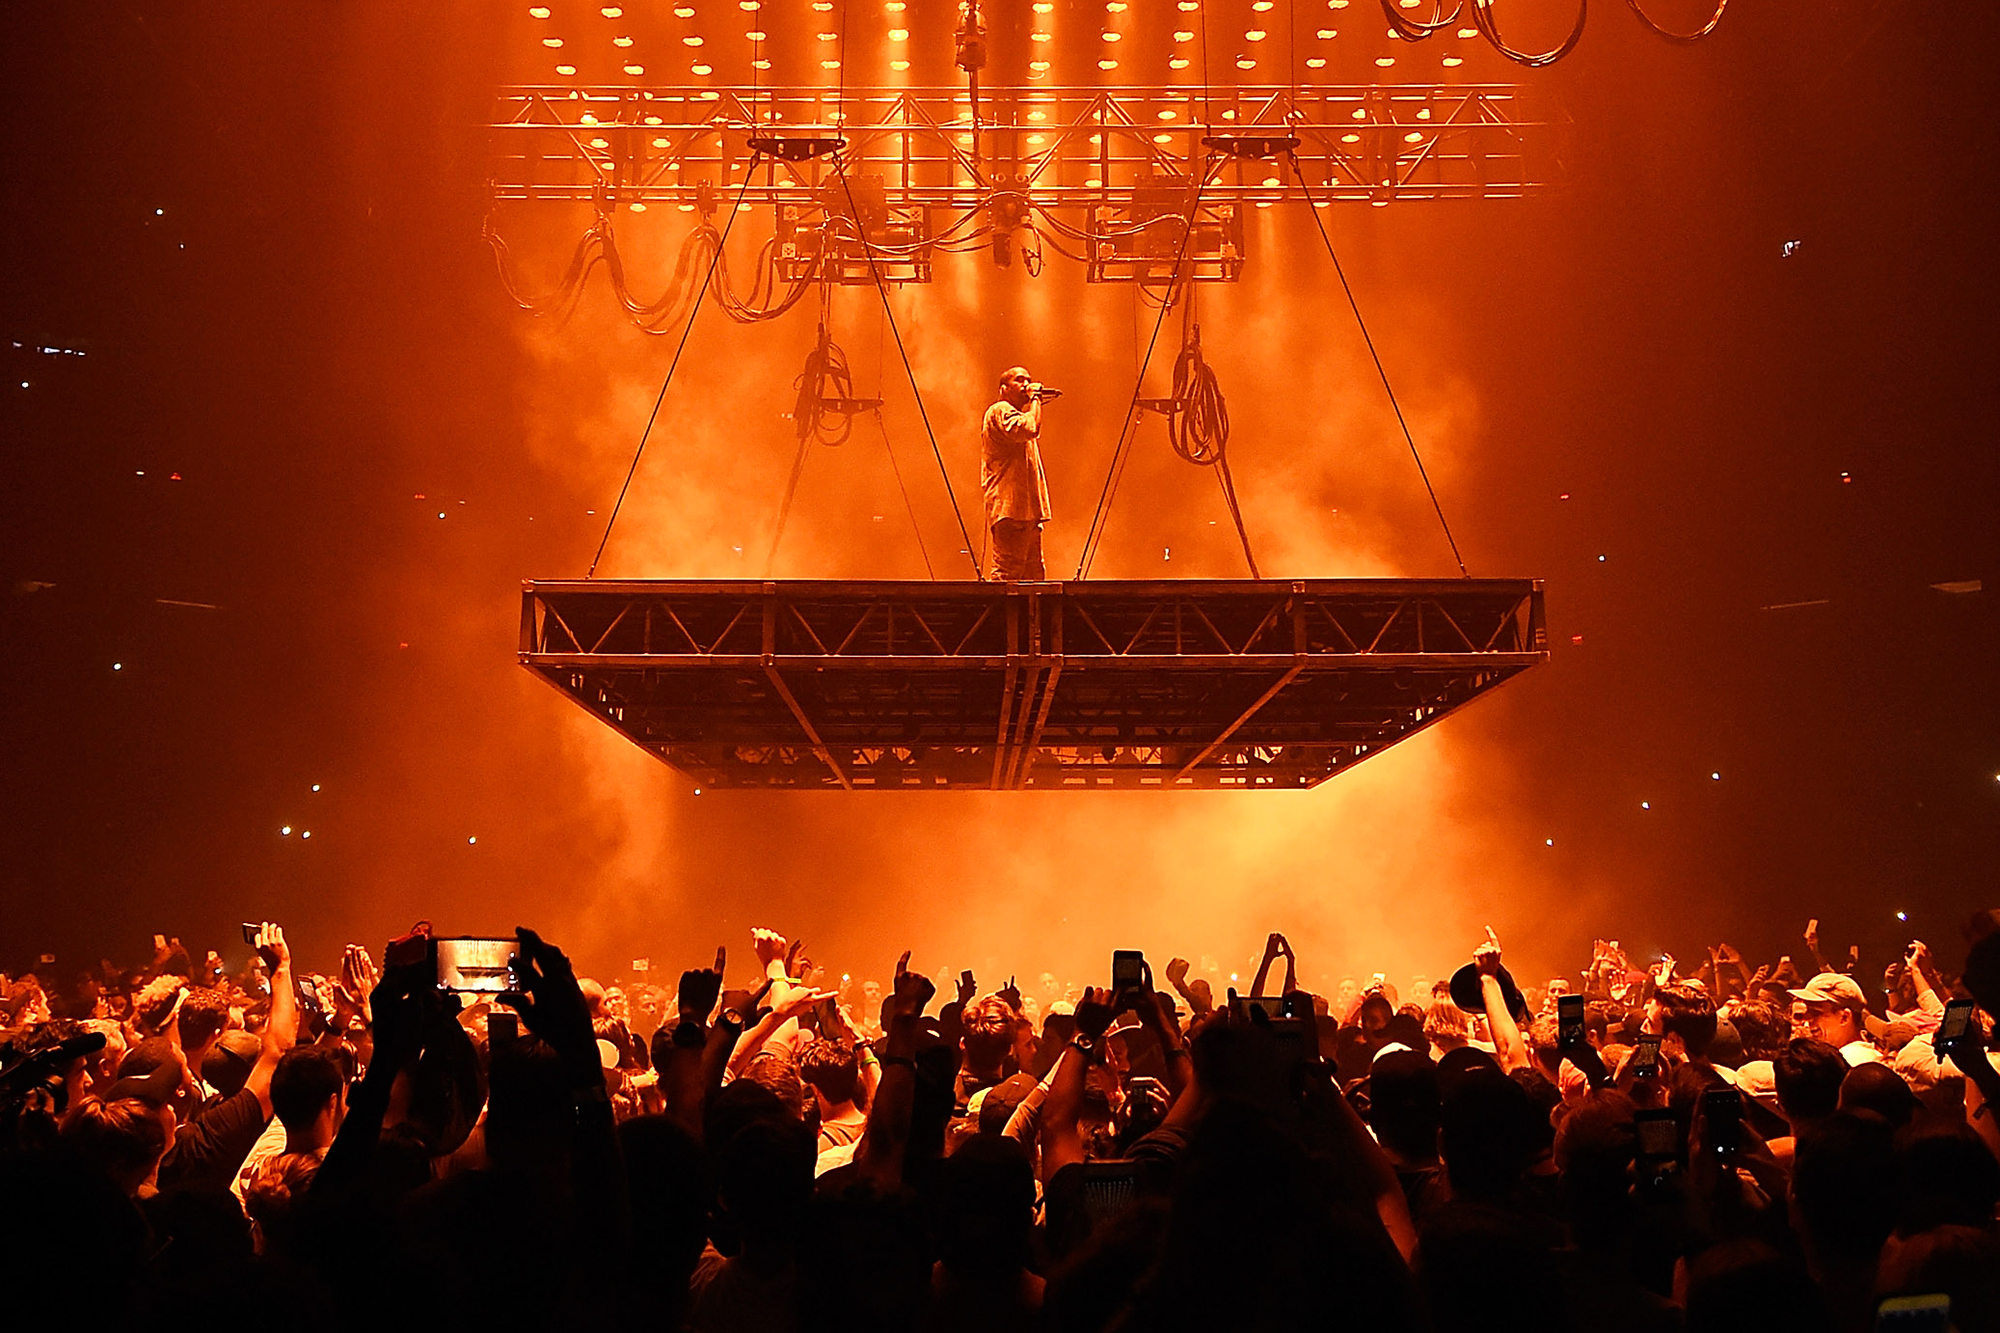 Kanye West performs during his Saint Pablo Tour at Madison Square Garden in New York City, on Sept. 6, 2016.